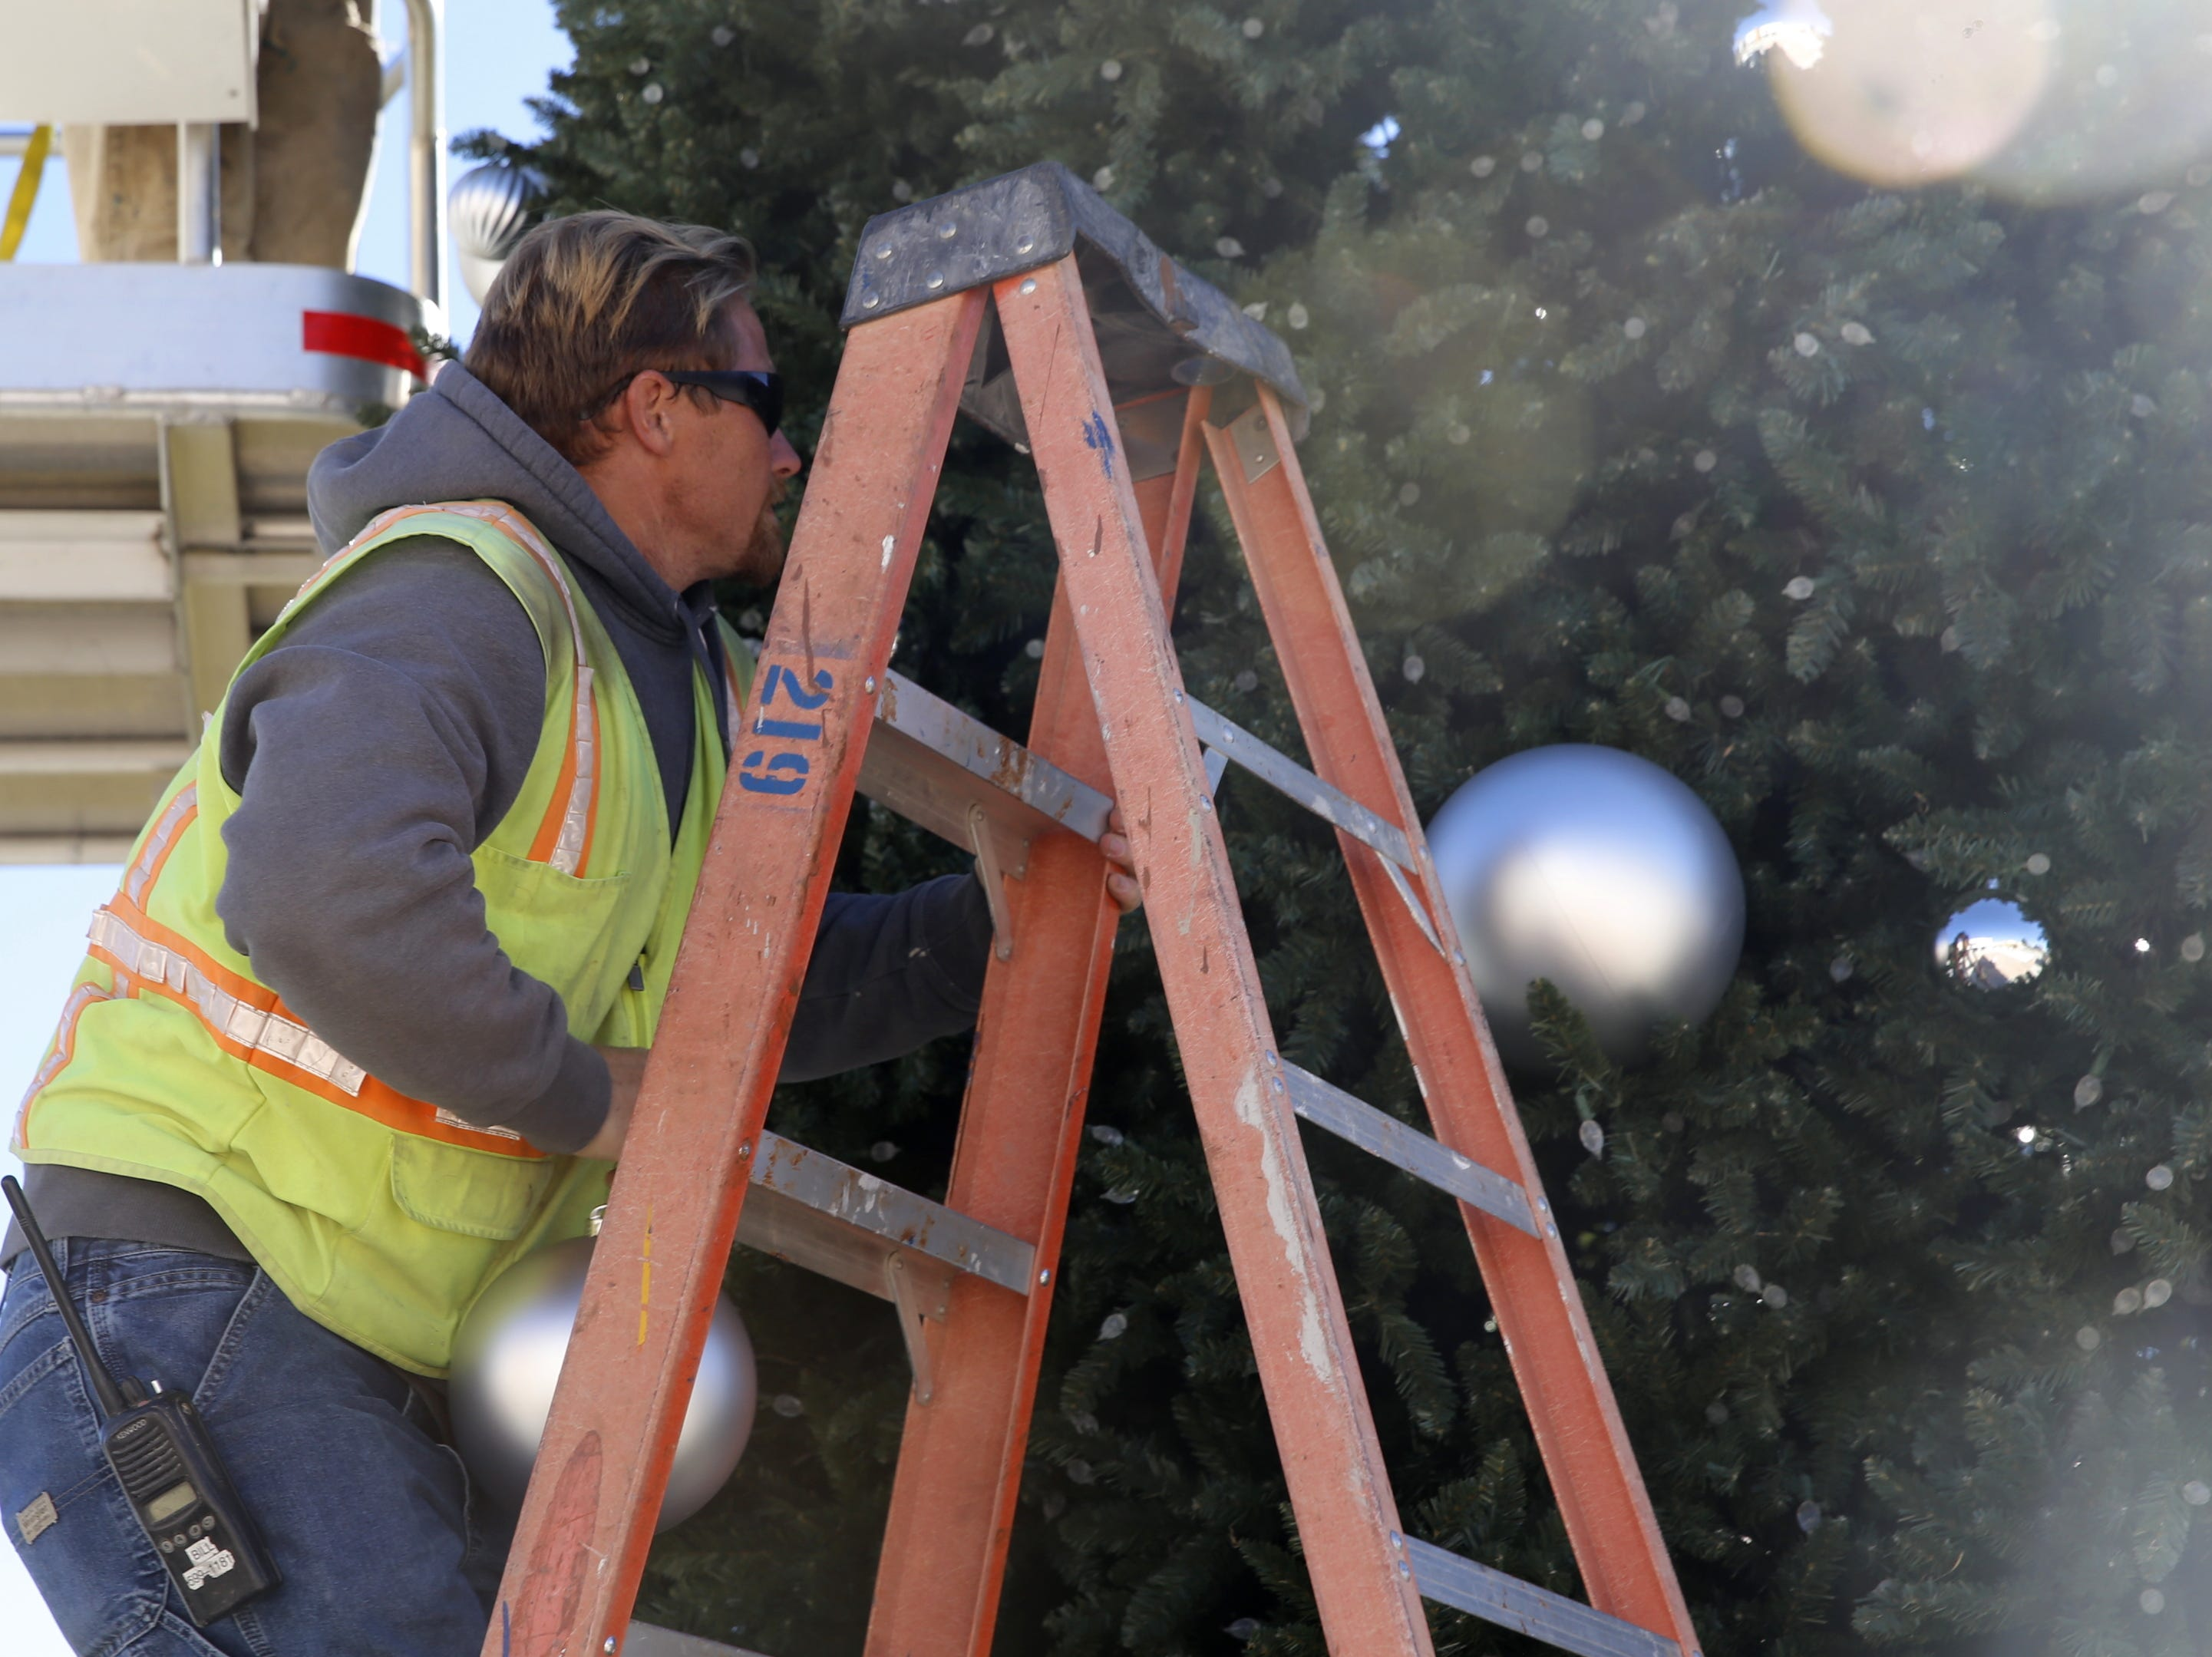 Bill Goelz climbs a ladder, Monday, Nov. 19, 2018, to hang an ornament on the Christmas tree outside the Farmington Civic Center.